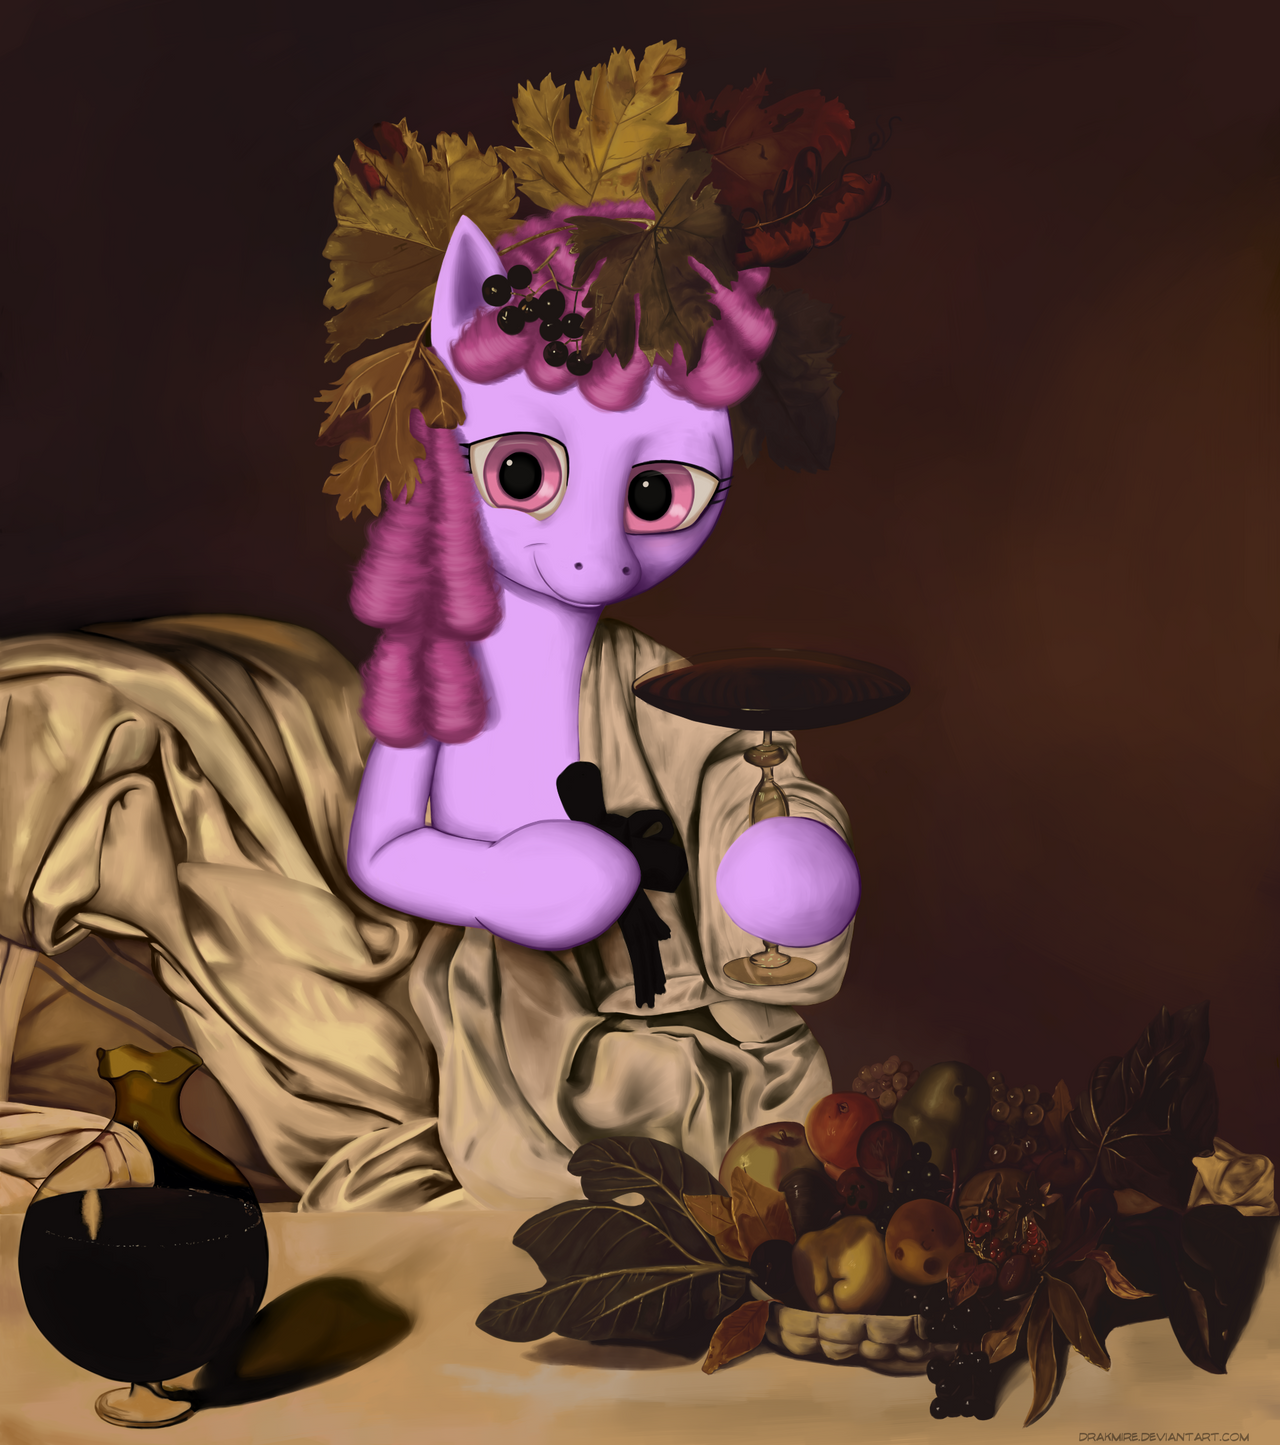 Masters Ponystudy: Bacchus Punch by Drakmire